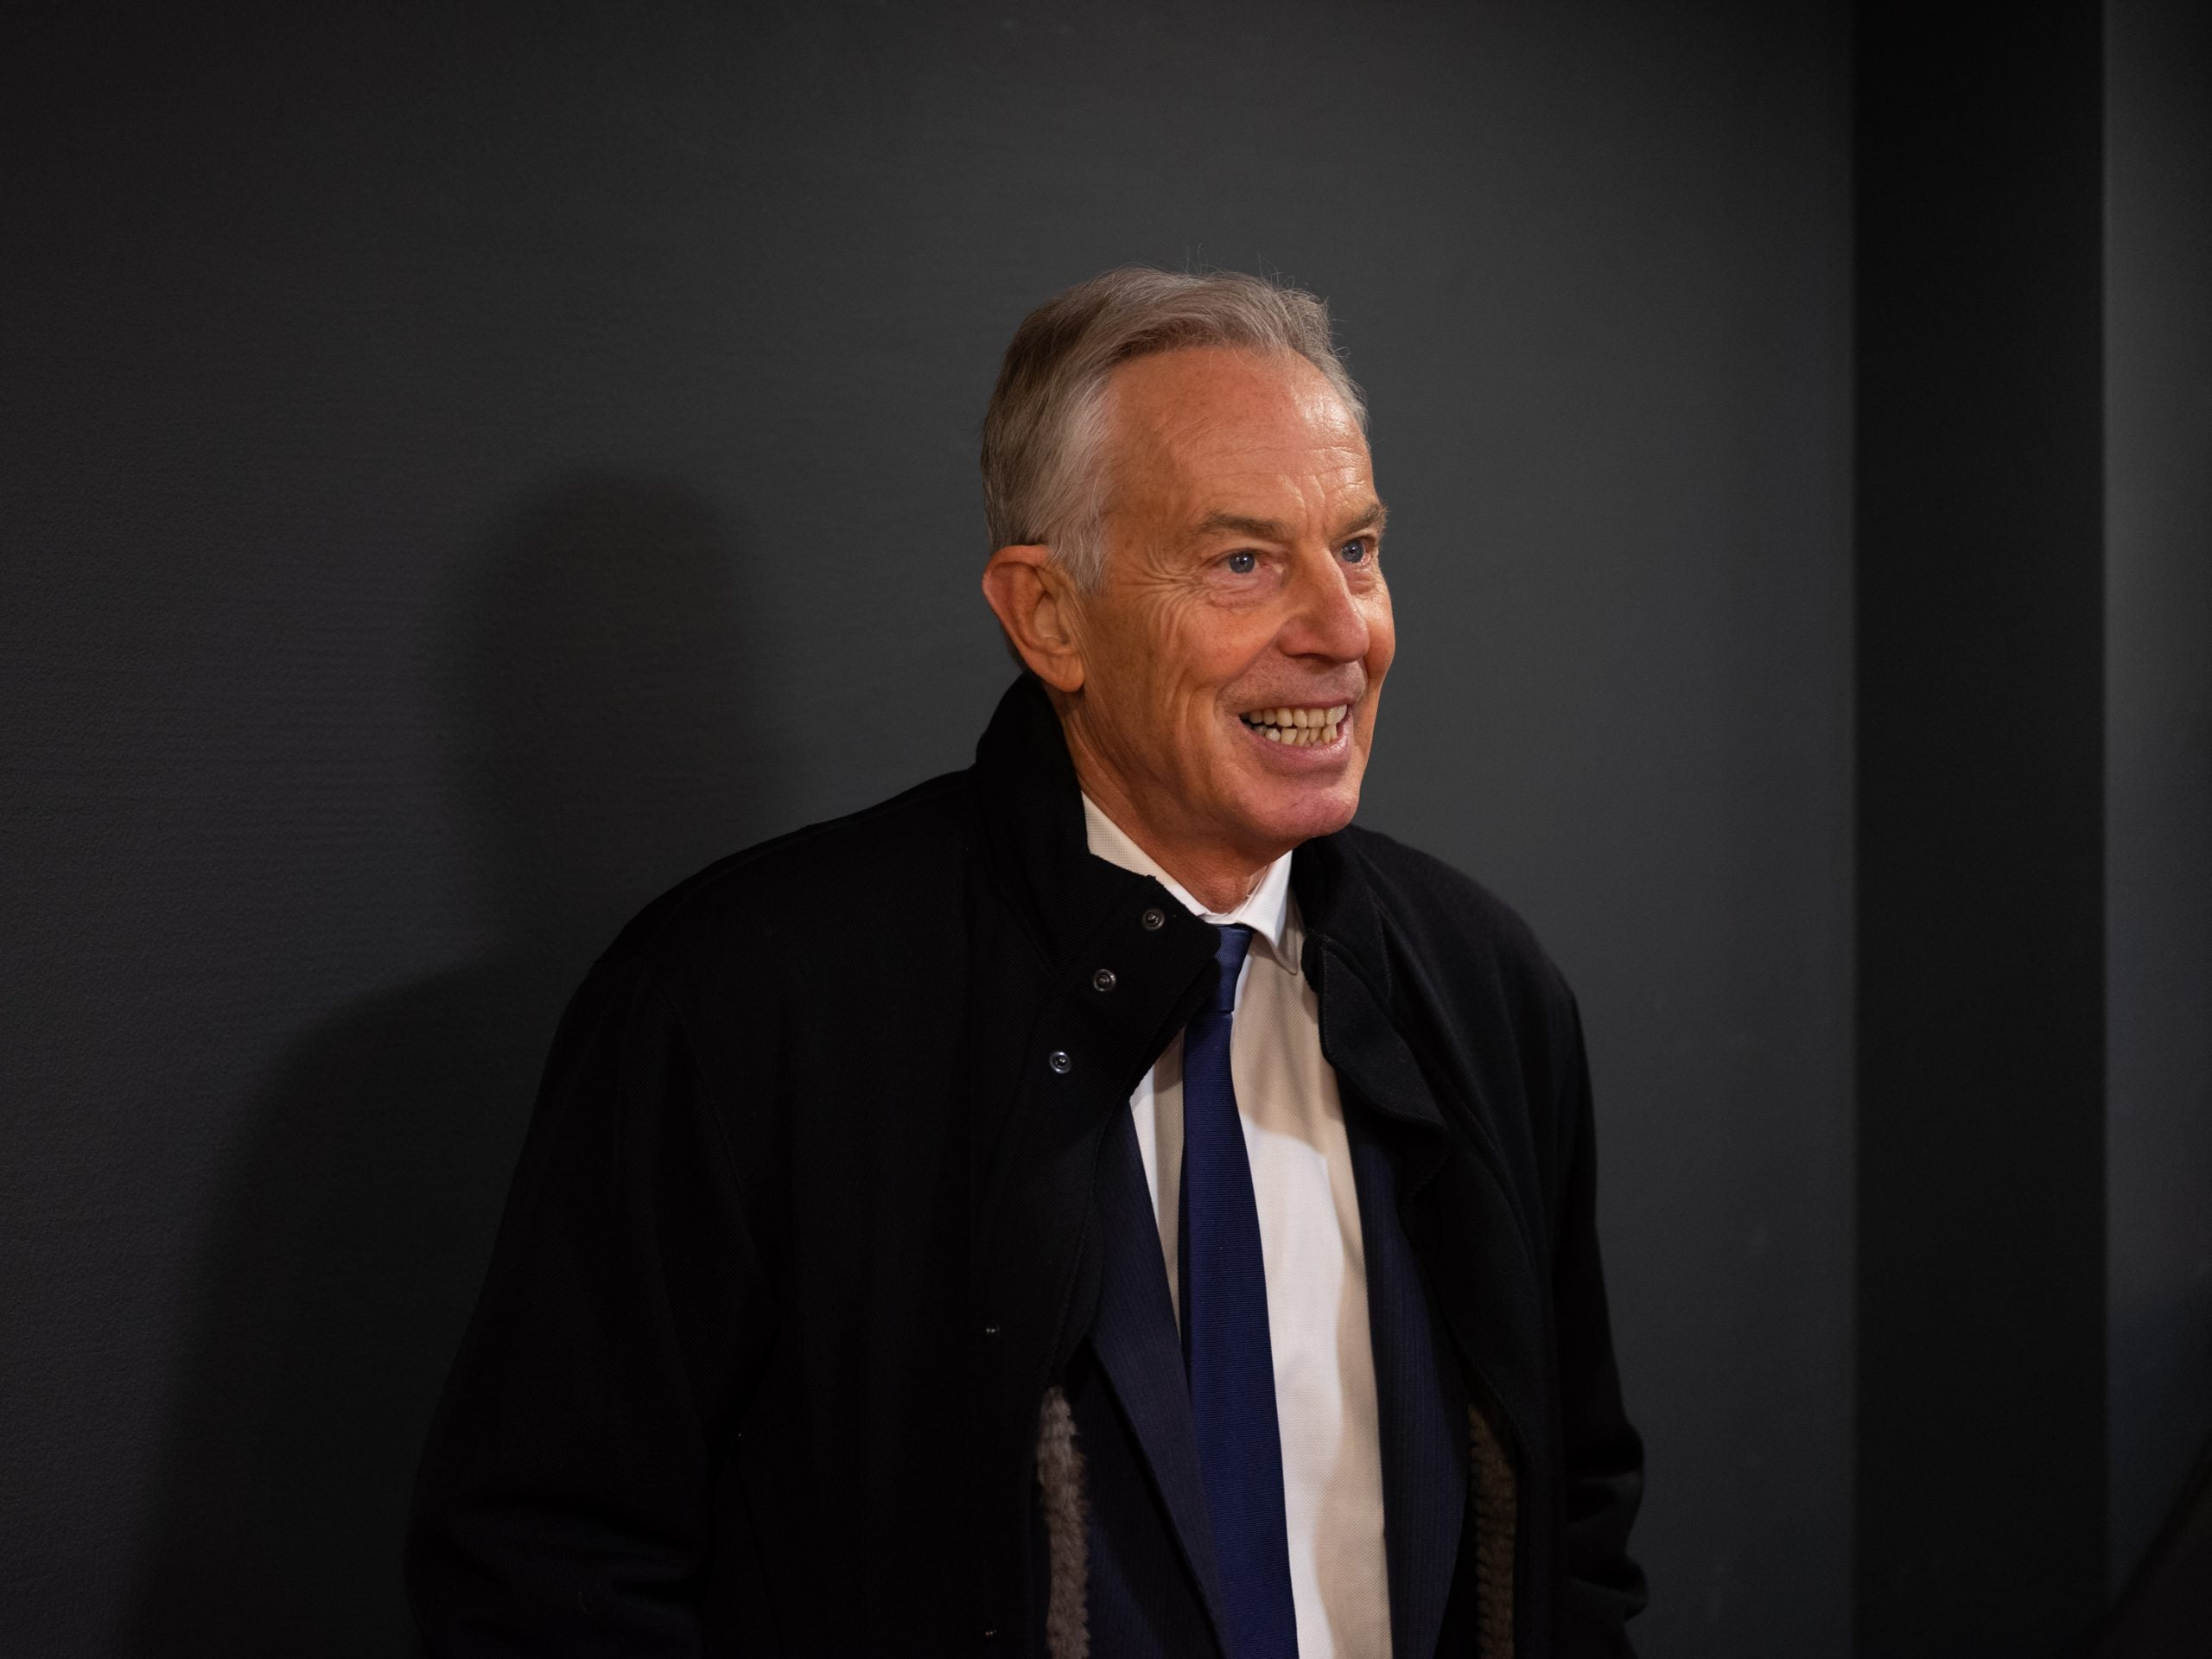 """Tony Blair on extremism: """"You've got to destroy the ideas"""""""